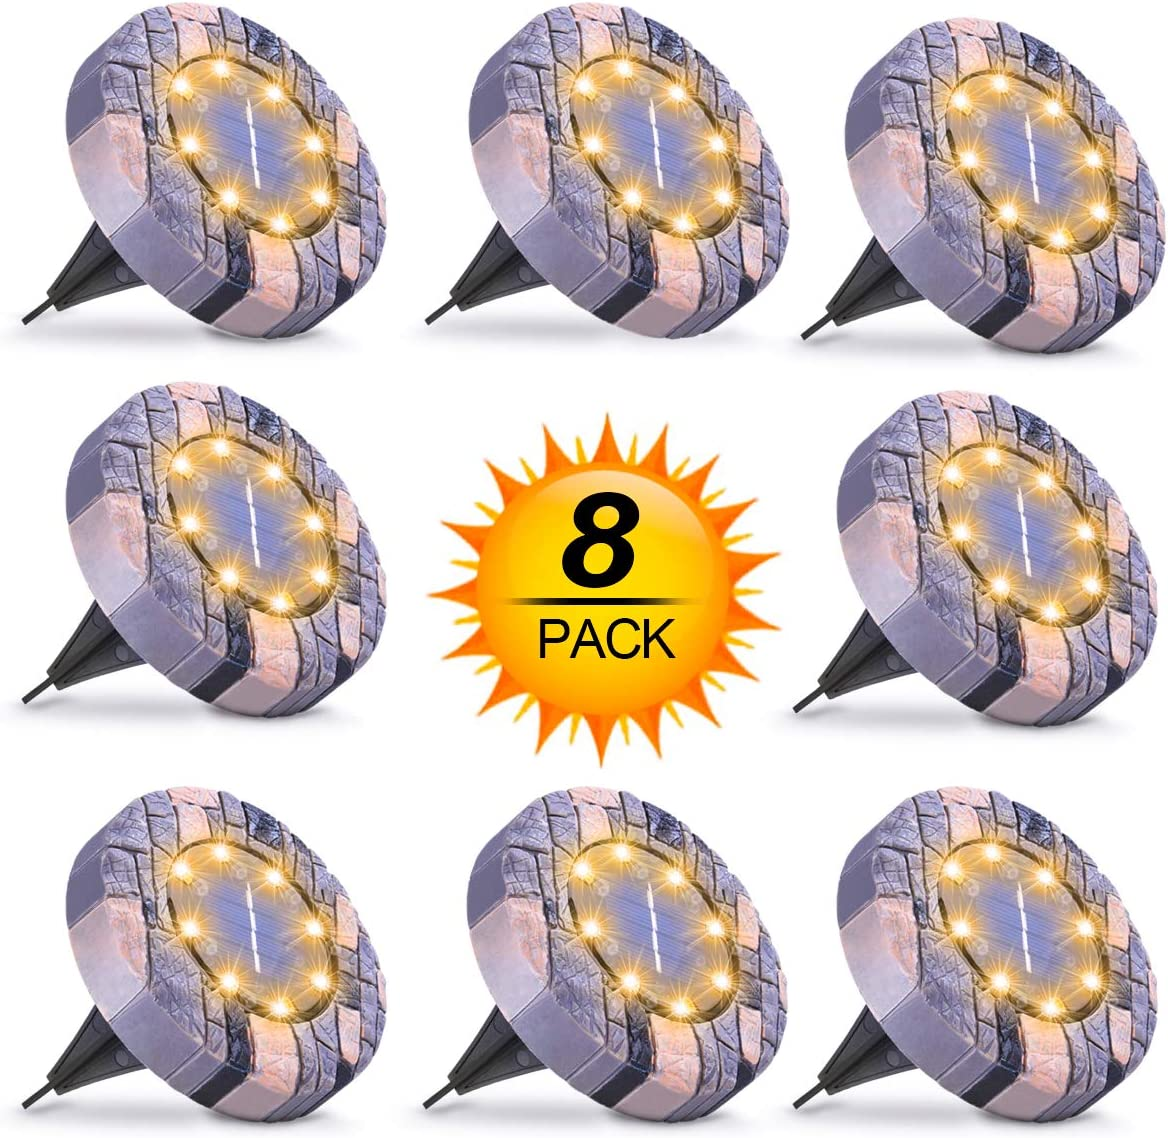 Solar Lights Outdoor, Solar Powered Ground Lights Outdoor Waterproof Solar Garden Lights 8 LED Solar Disk Lights, Solar Landscape Lights for Pathway Yard Walkway Patio Lawn Path 8 Pack Warm White